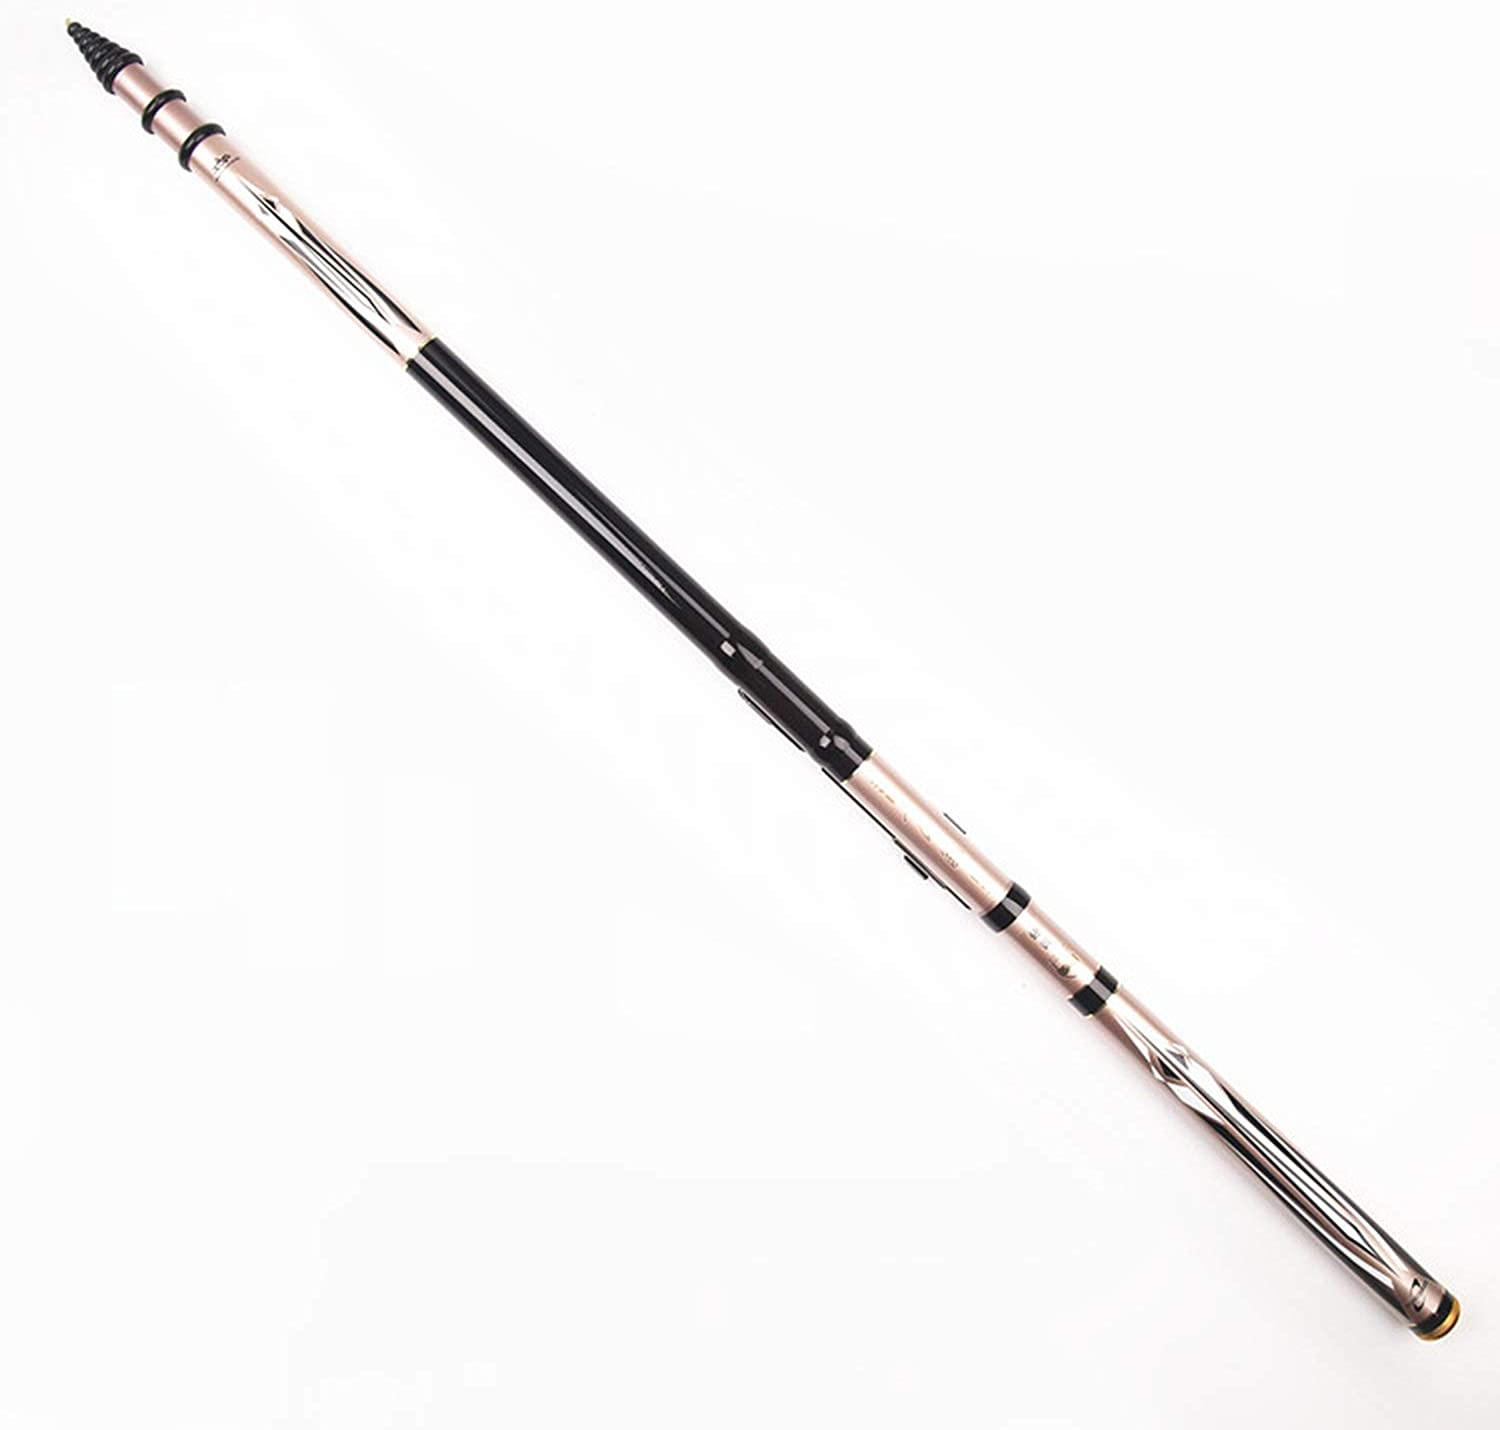 Carbon 4.5M 5.4M 6.3M 7.2M Telescopic Spinning Fishing Rod Weight 350G FrontEnd Fishing Rod 3 Position Drag 5Kg